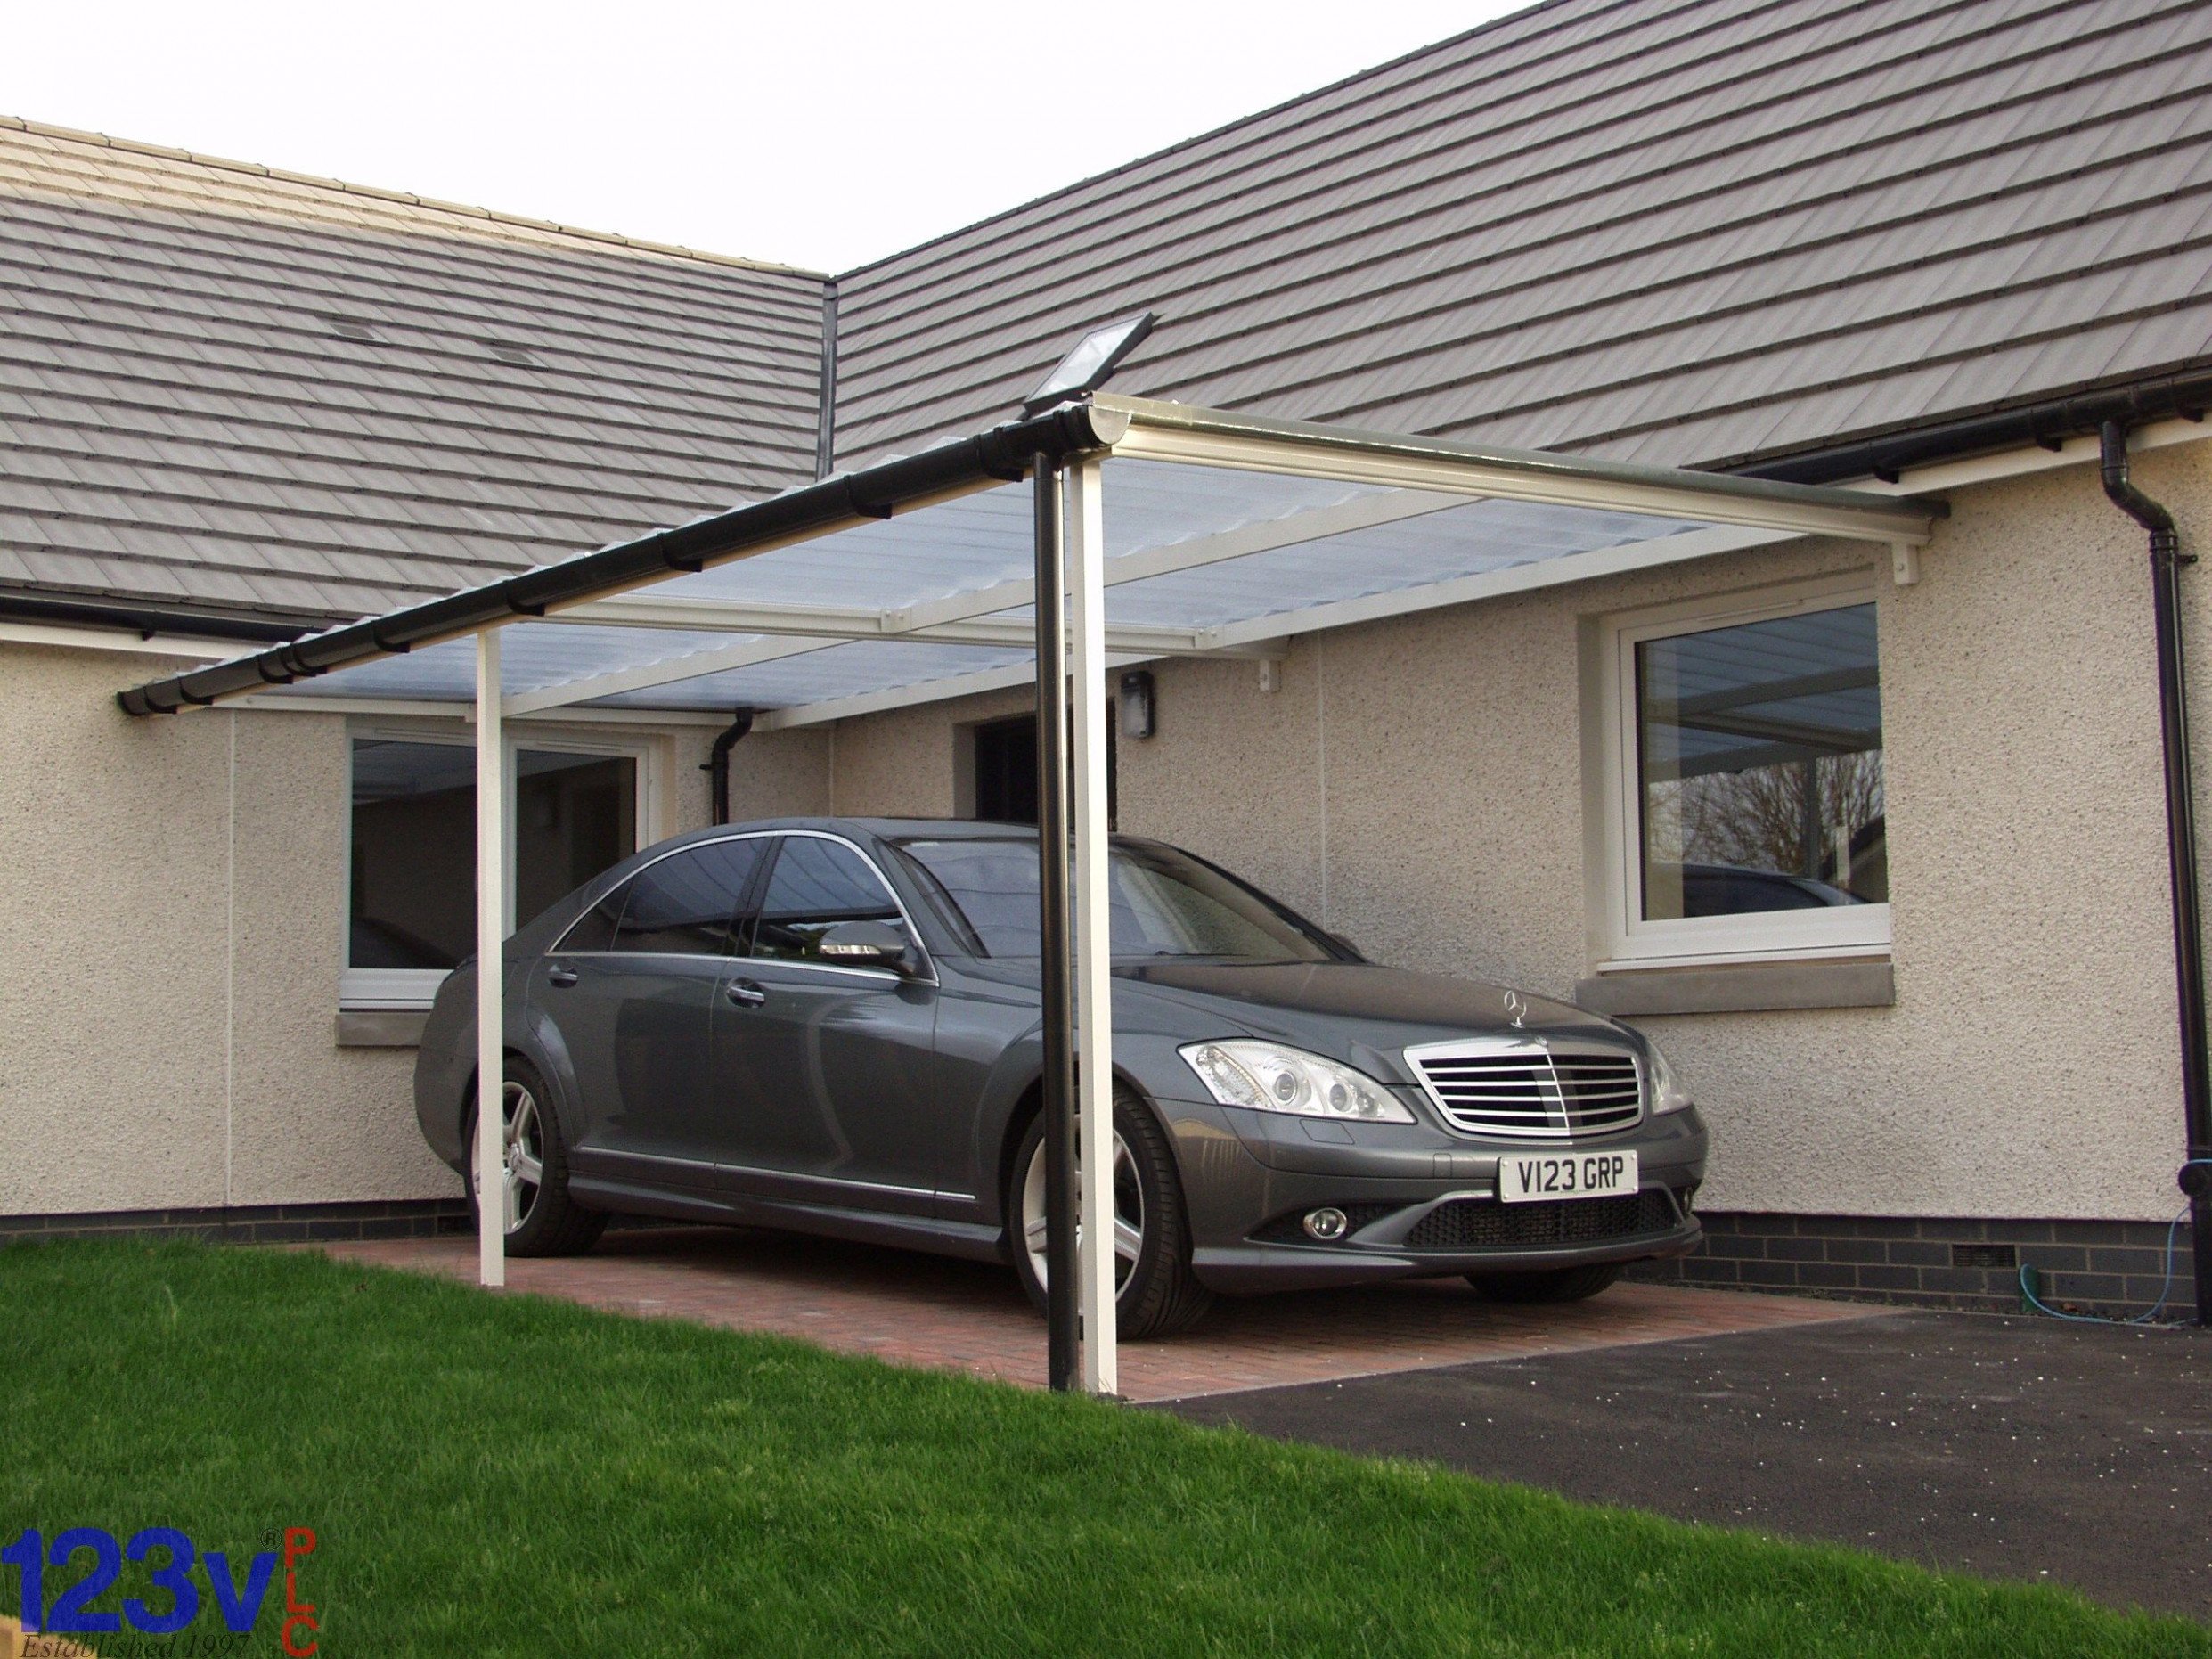 Car Canopy Uk & 13v Carport Canopy Neat Simple Practical ..